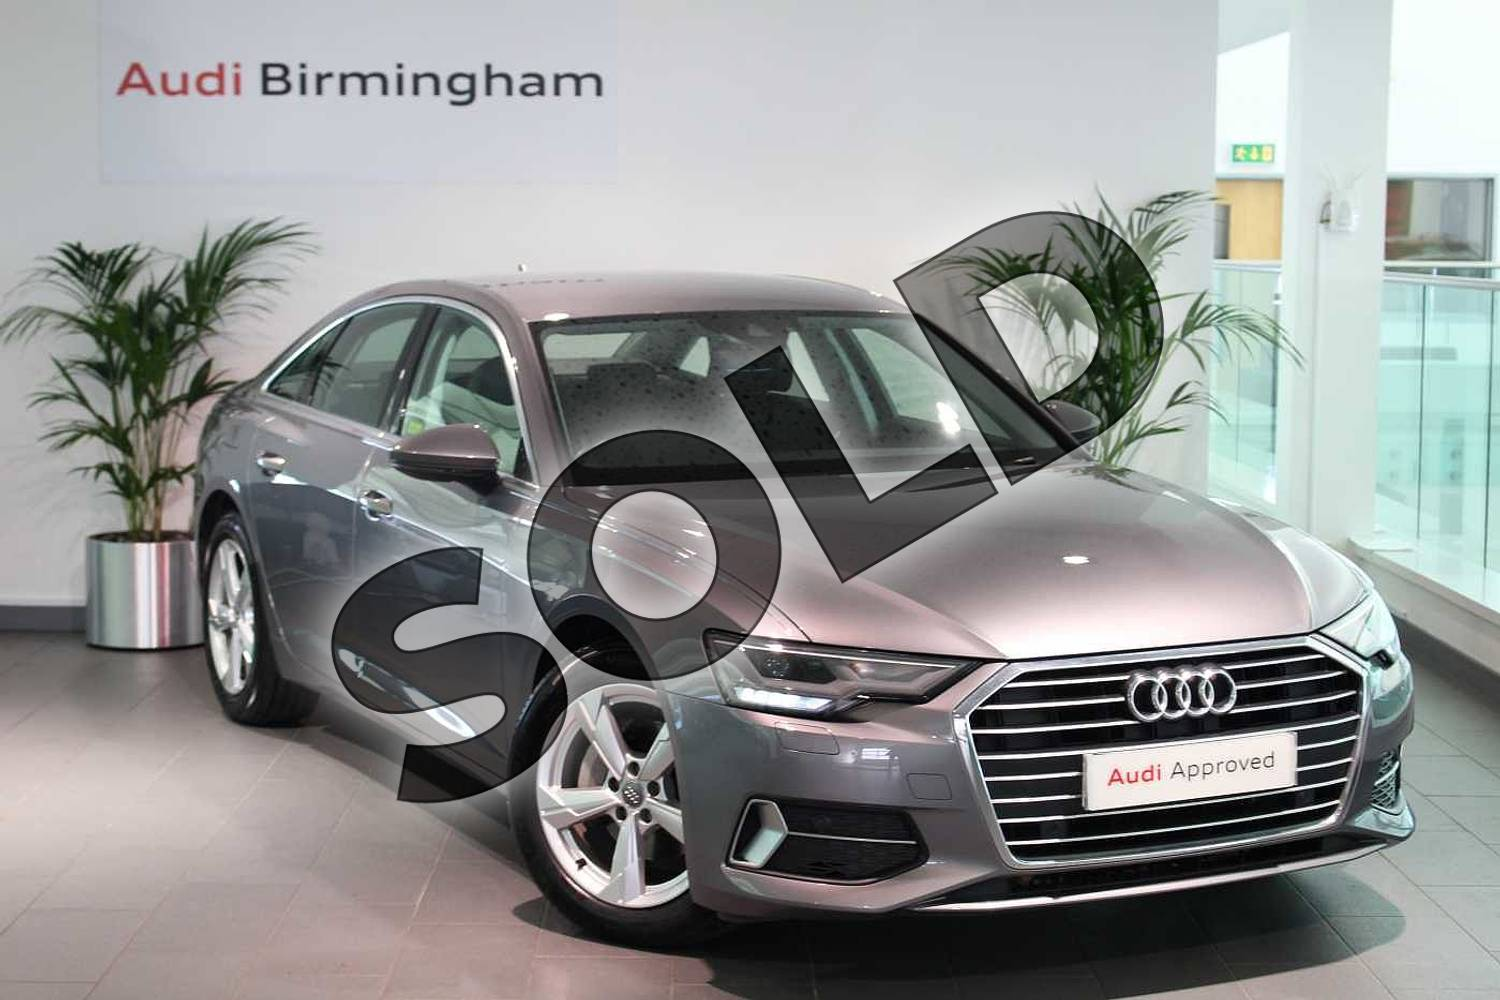 2019 Audi A6 Diesel Saloon 40 TDI Sport 4dr S Tronic in Typhoon Grey Metallic at Coventry Audi